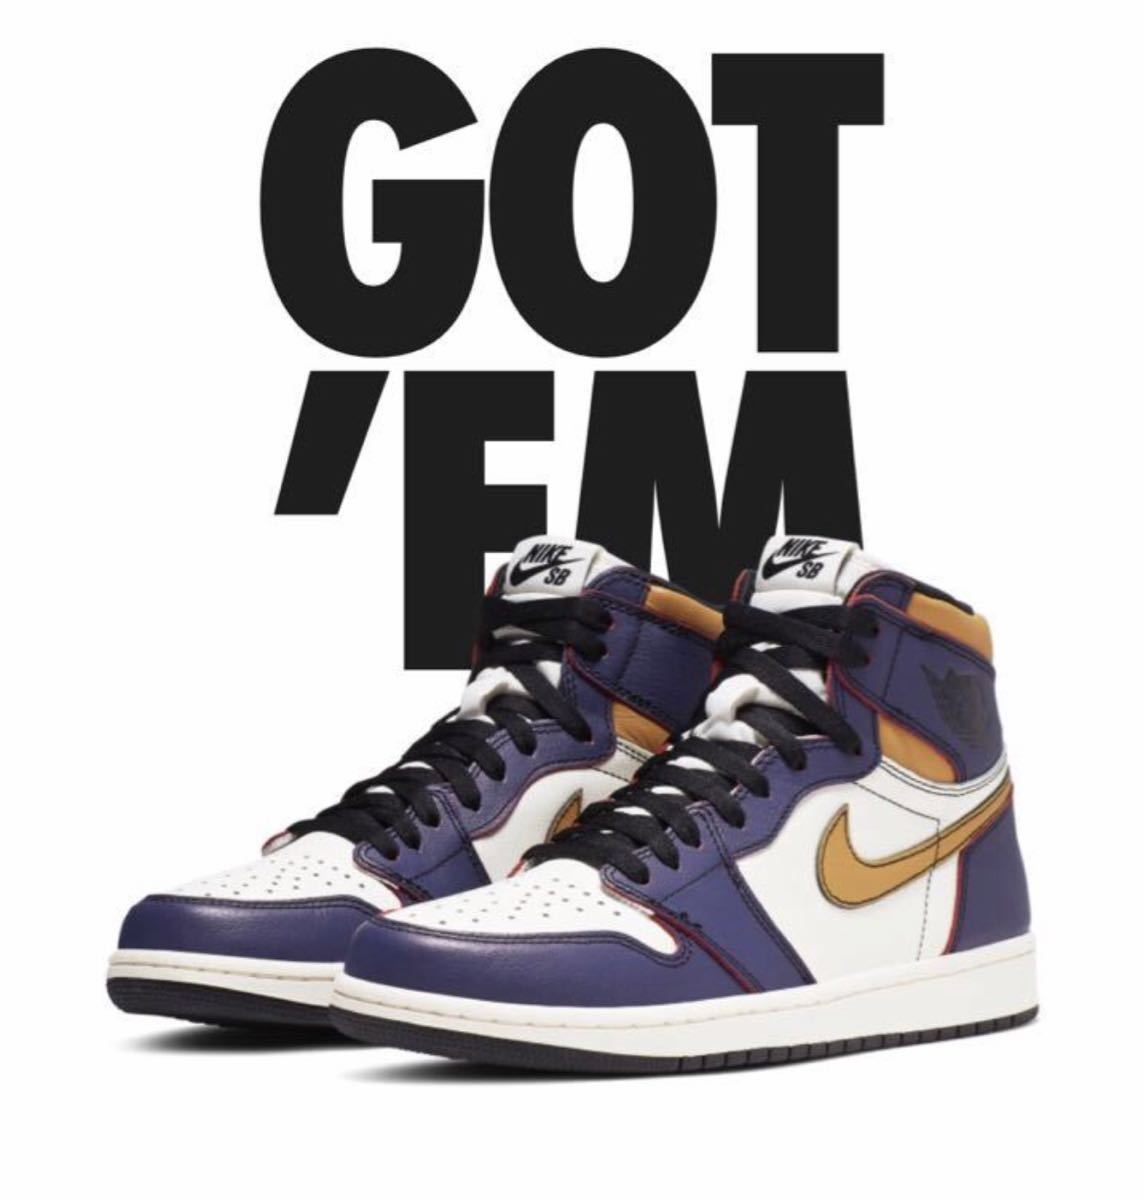 28.5cm NIKE SB AIR JORDAN 1 RETRO HIGH OG DEFIANT LA TO CHICAGO CD6578-507 ナイキ エアジョーダン1 レイカーズ US10.5 AJ1 正規品